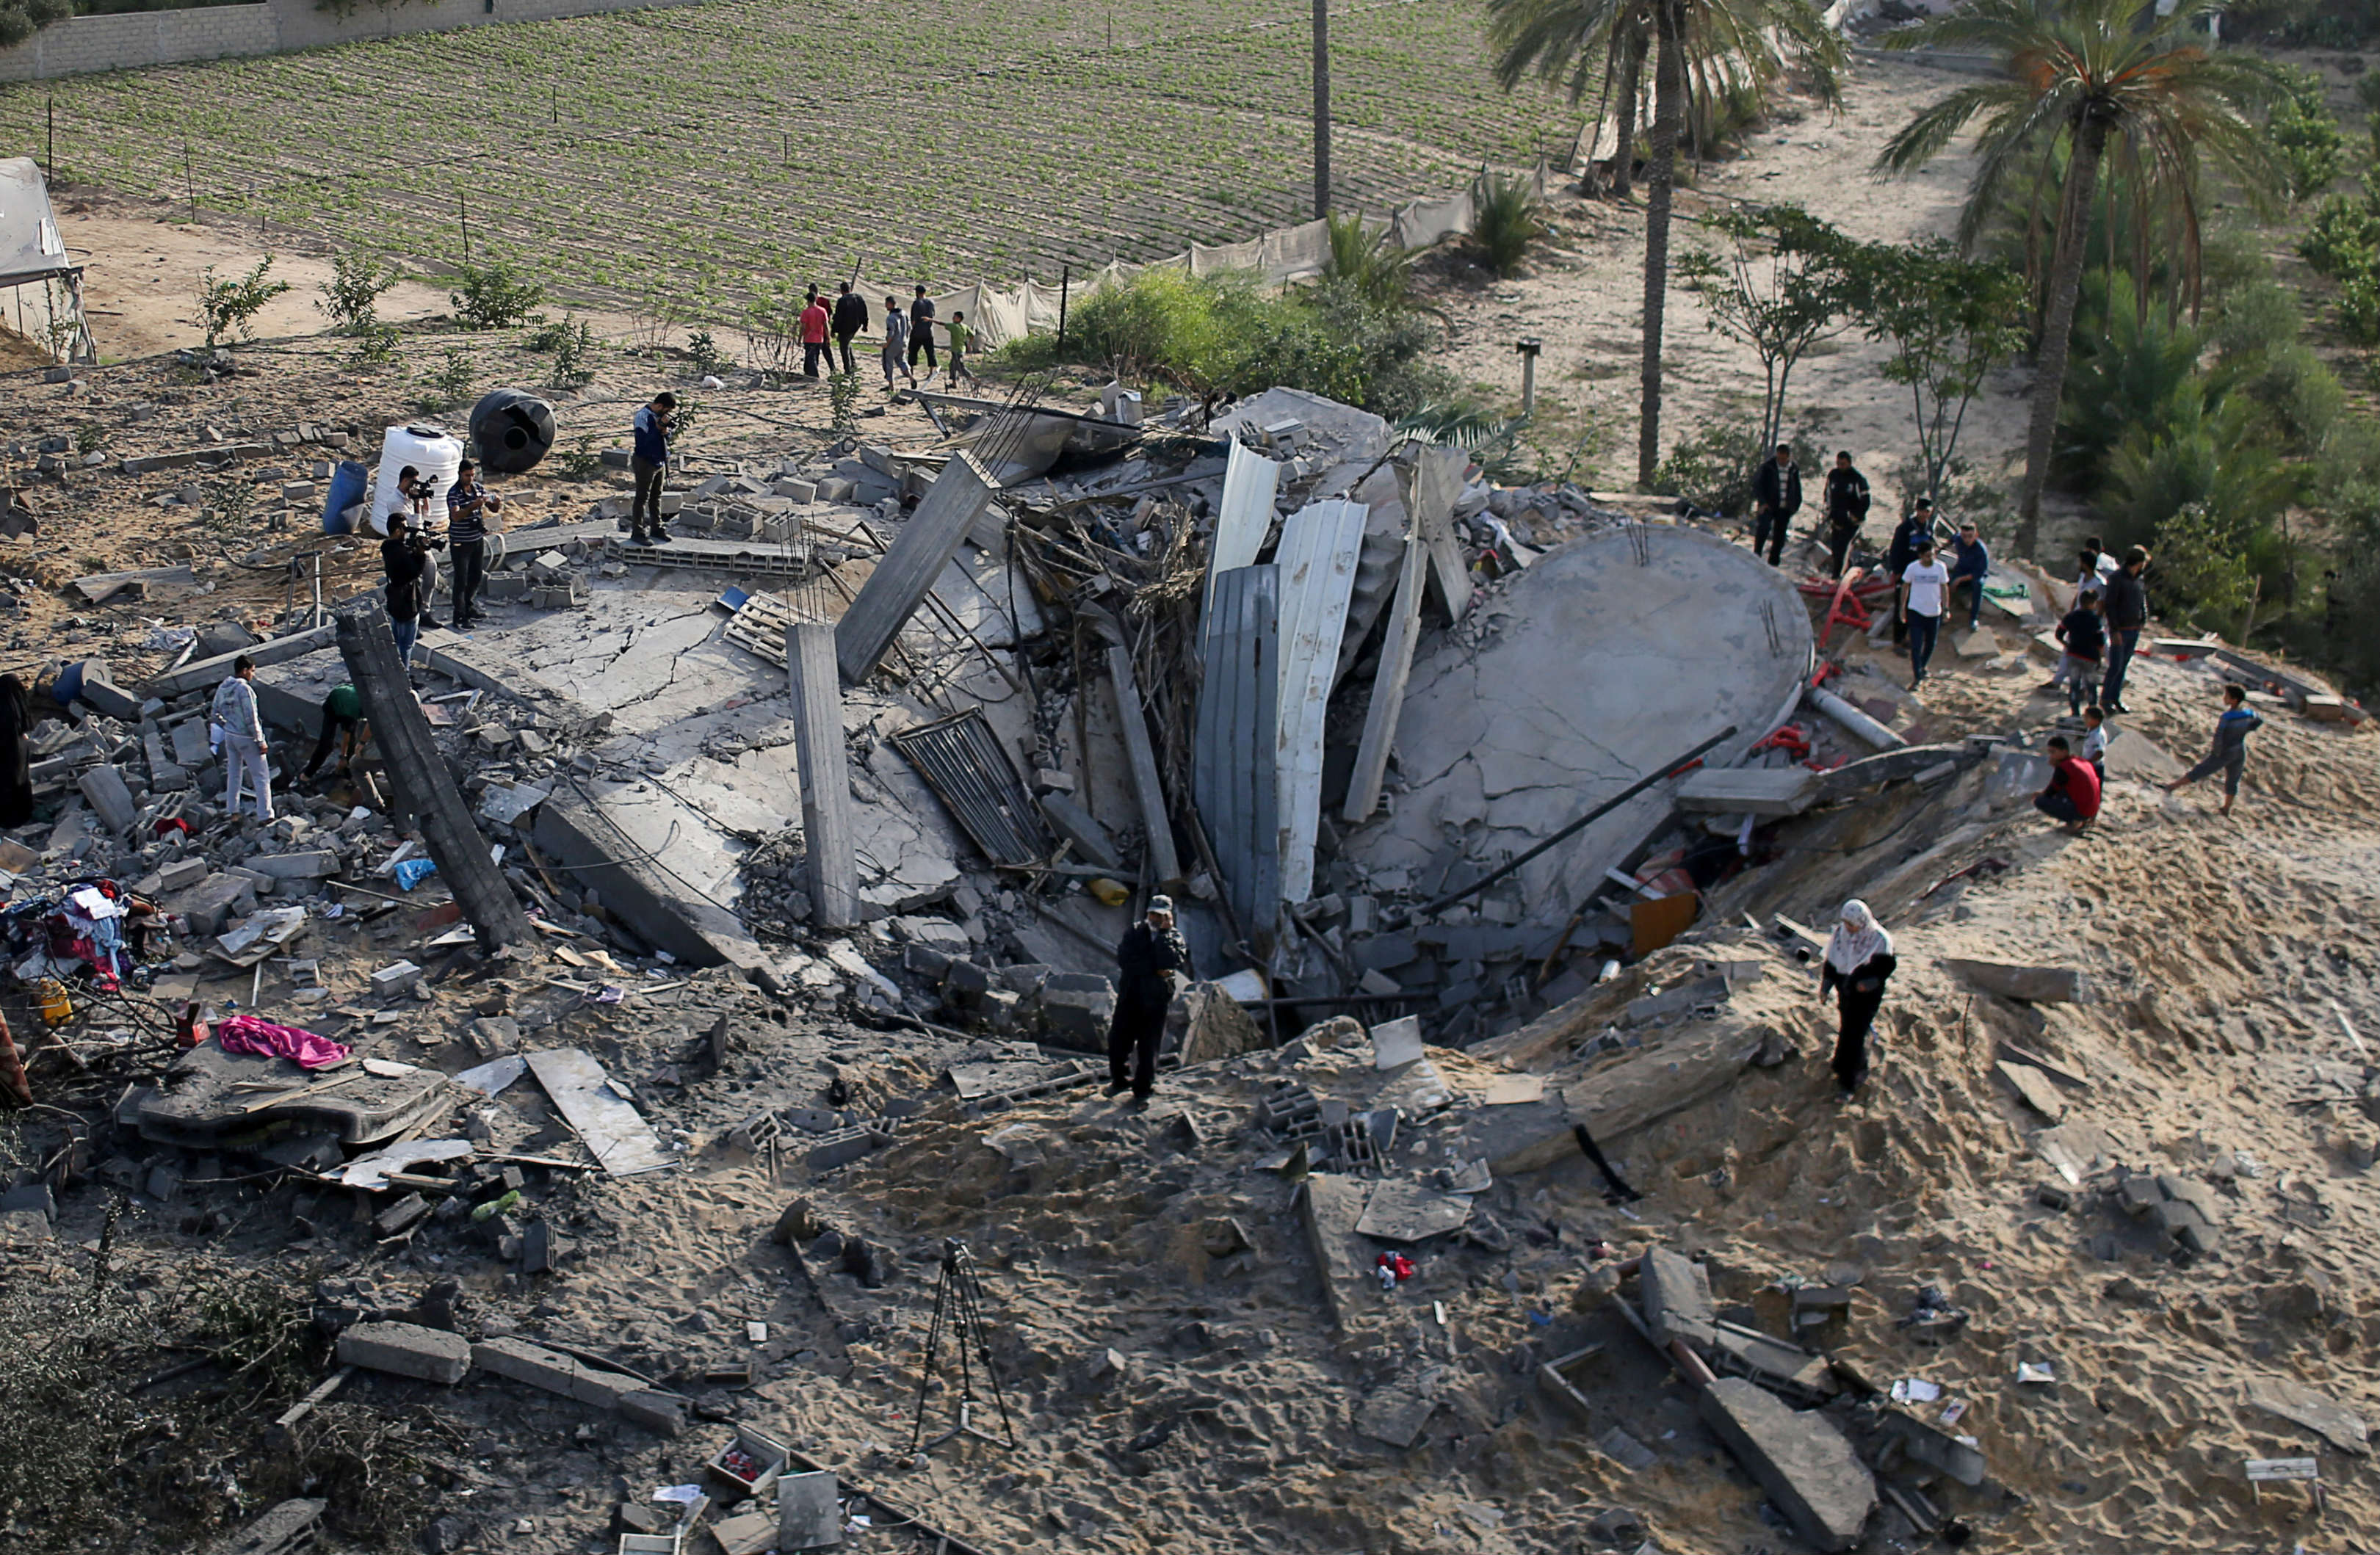 Palestinian death toll rises to 19 as Israel continues air strikes against Gaza